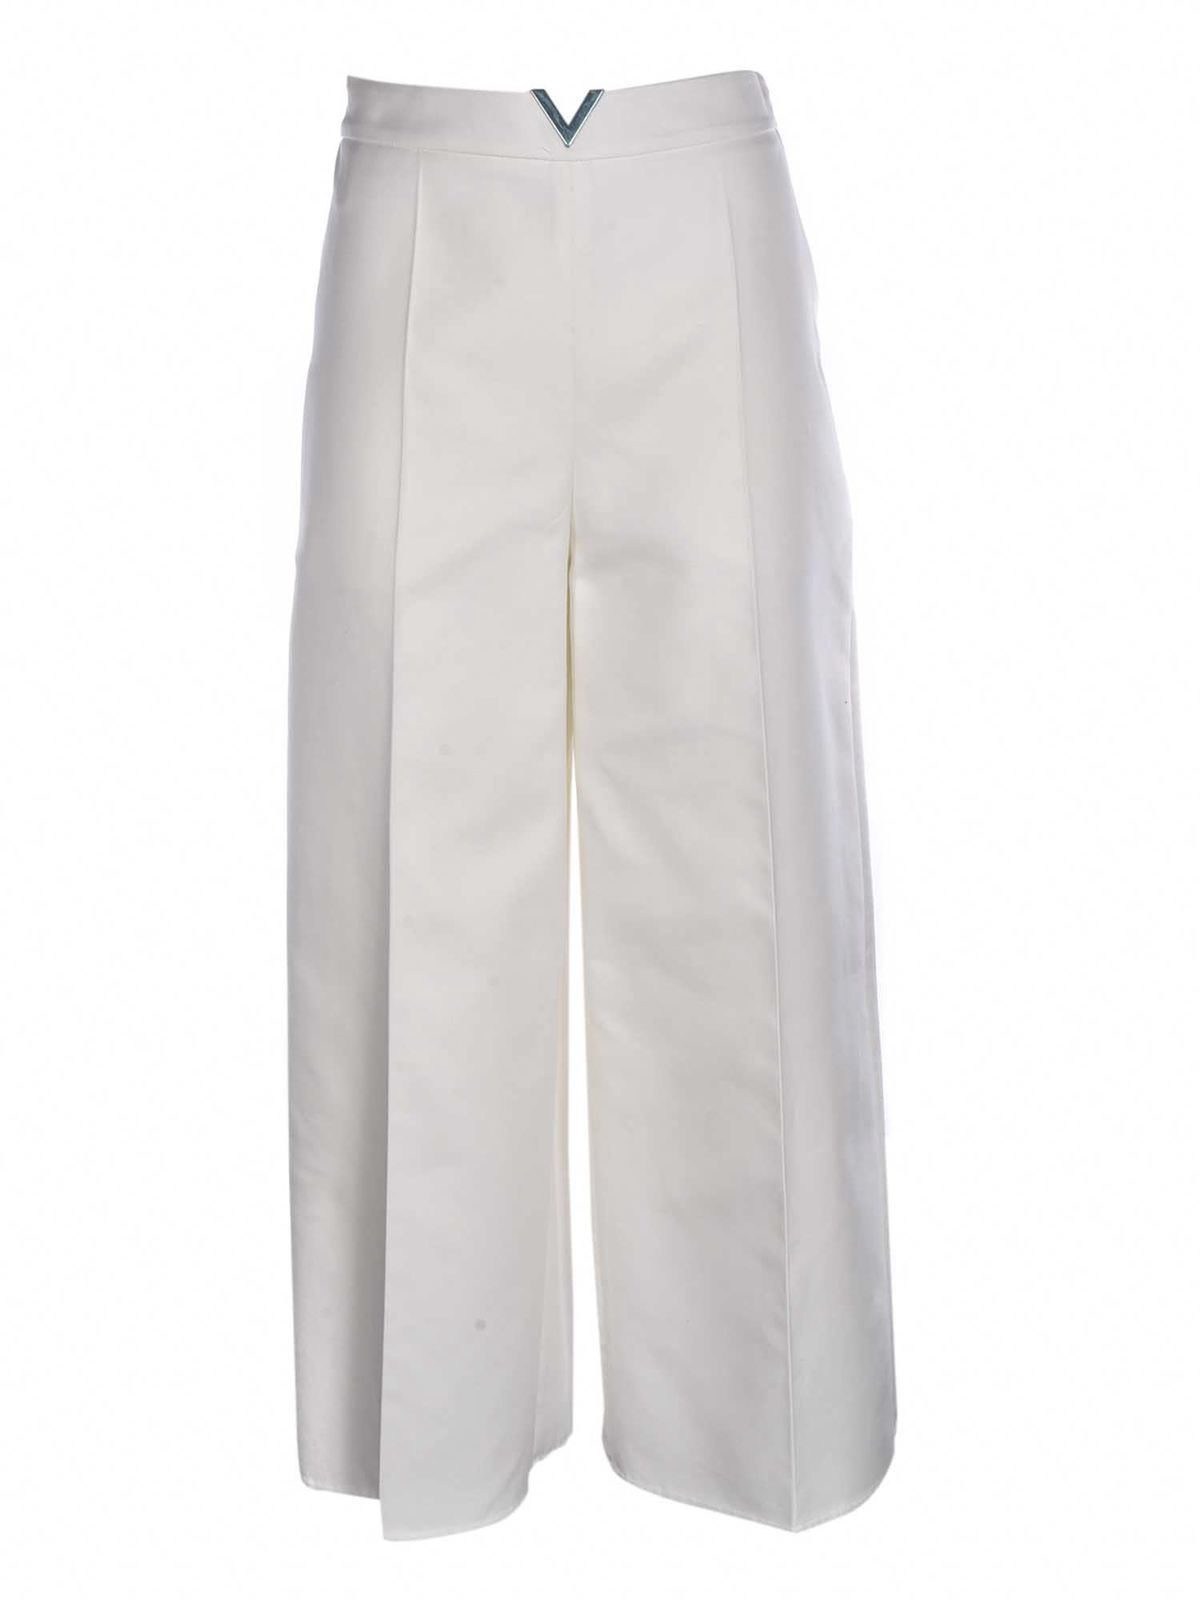 Valentino Downs METAL DETAIL TROUSERS